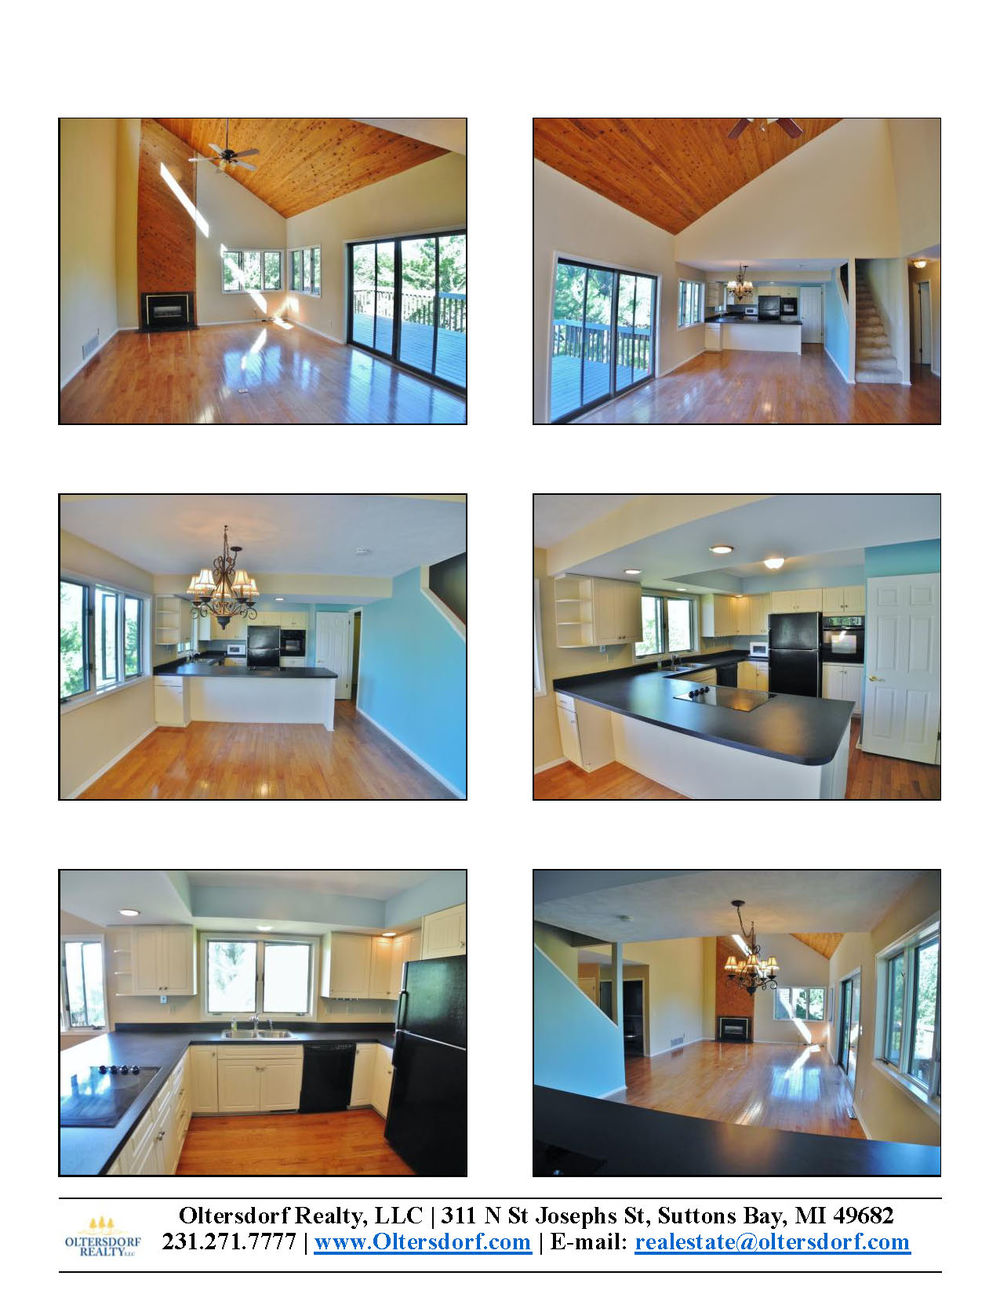 3246 Holiday View Drive, Traverse City, MI – 4 Bedroom, 3 bath Holiday Hills Home For sale by Oltersdorf Realty LLC (7).jpg